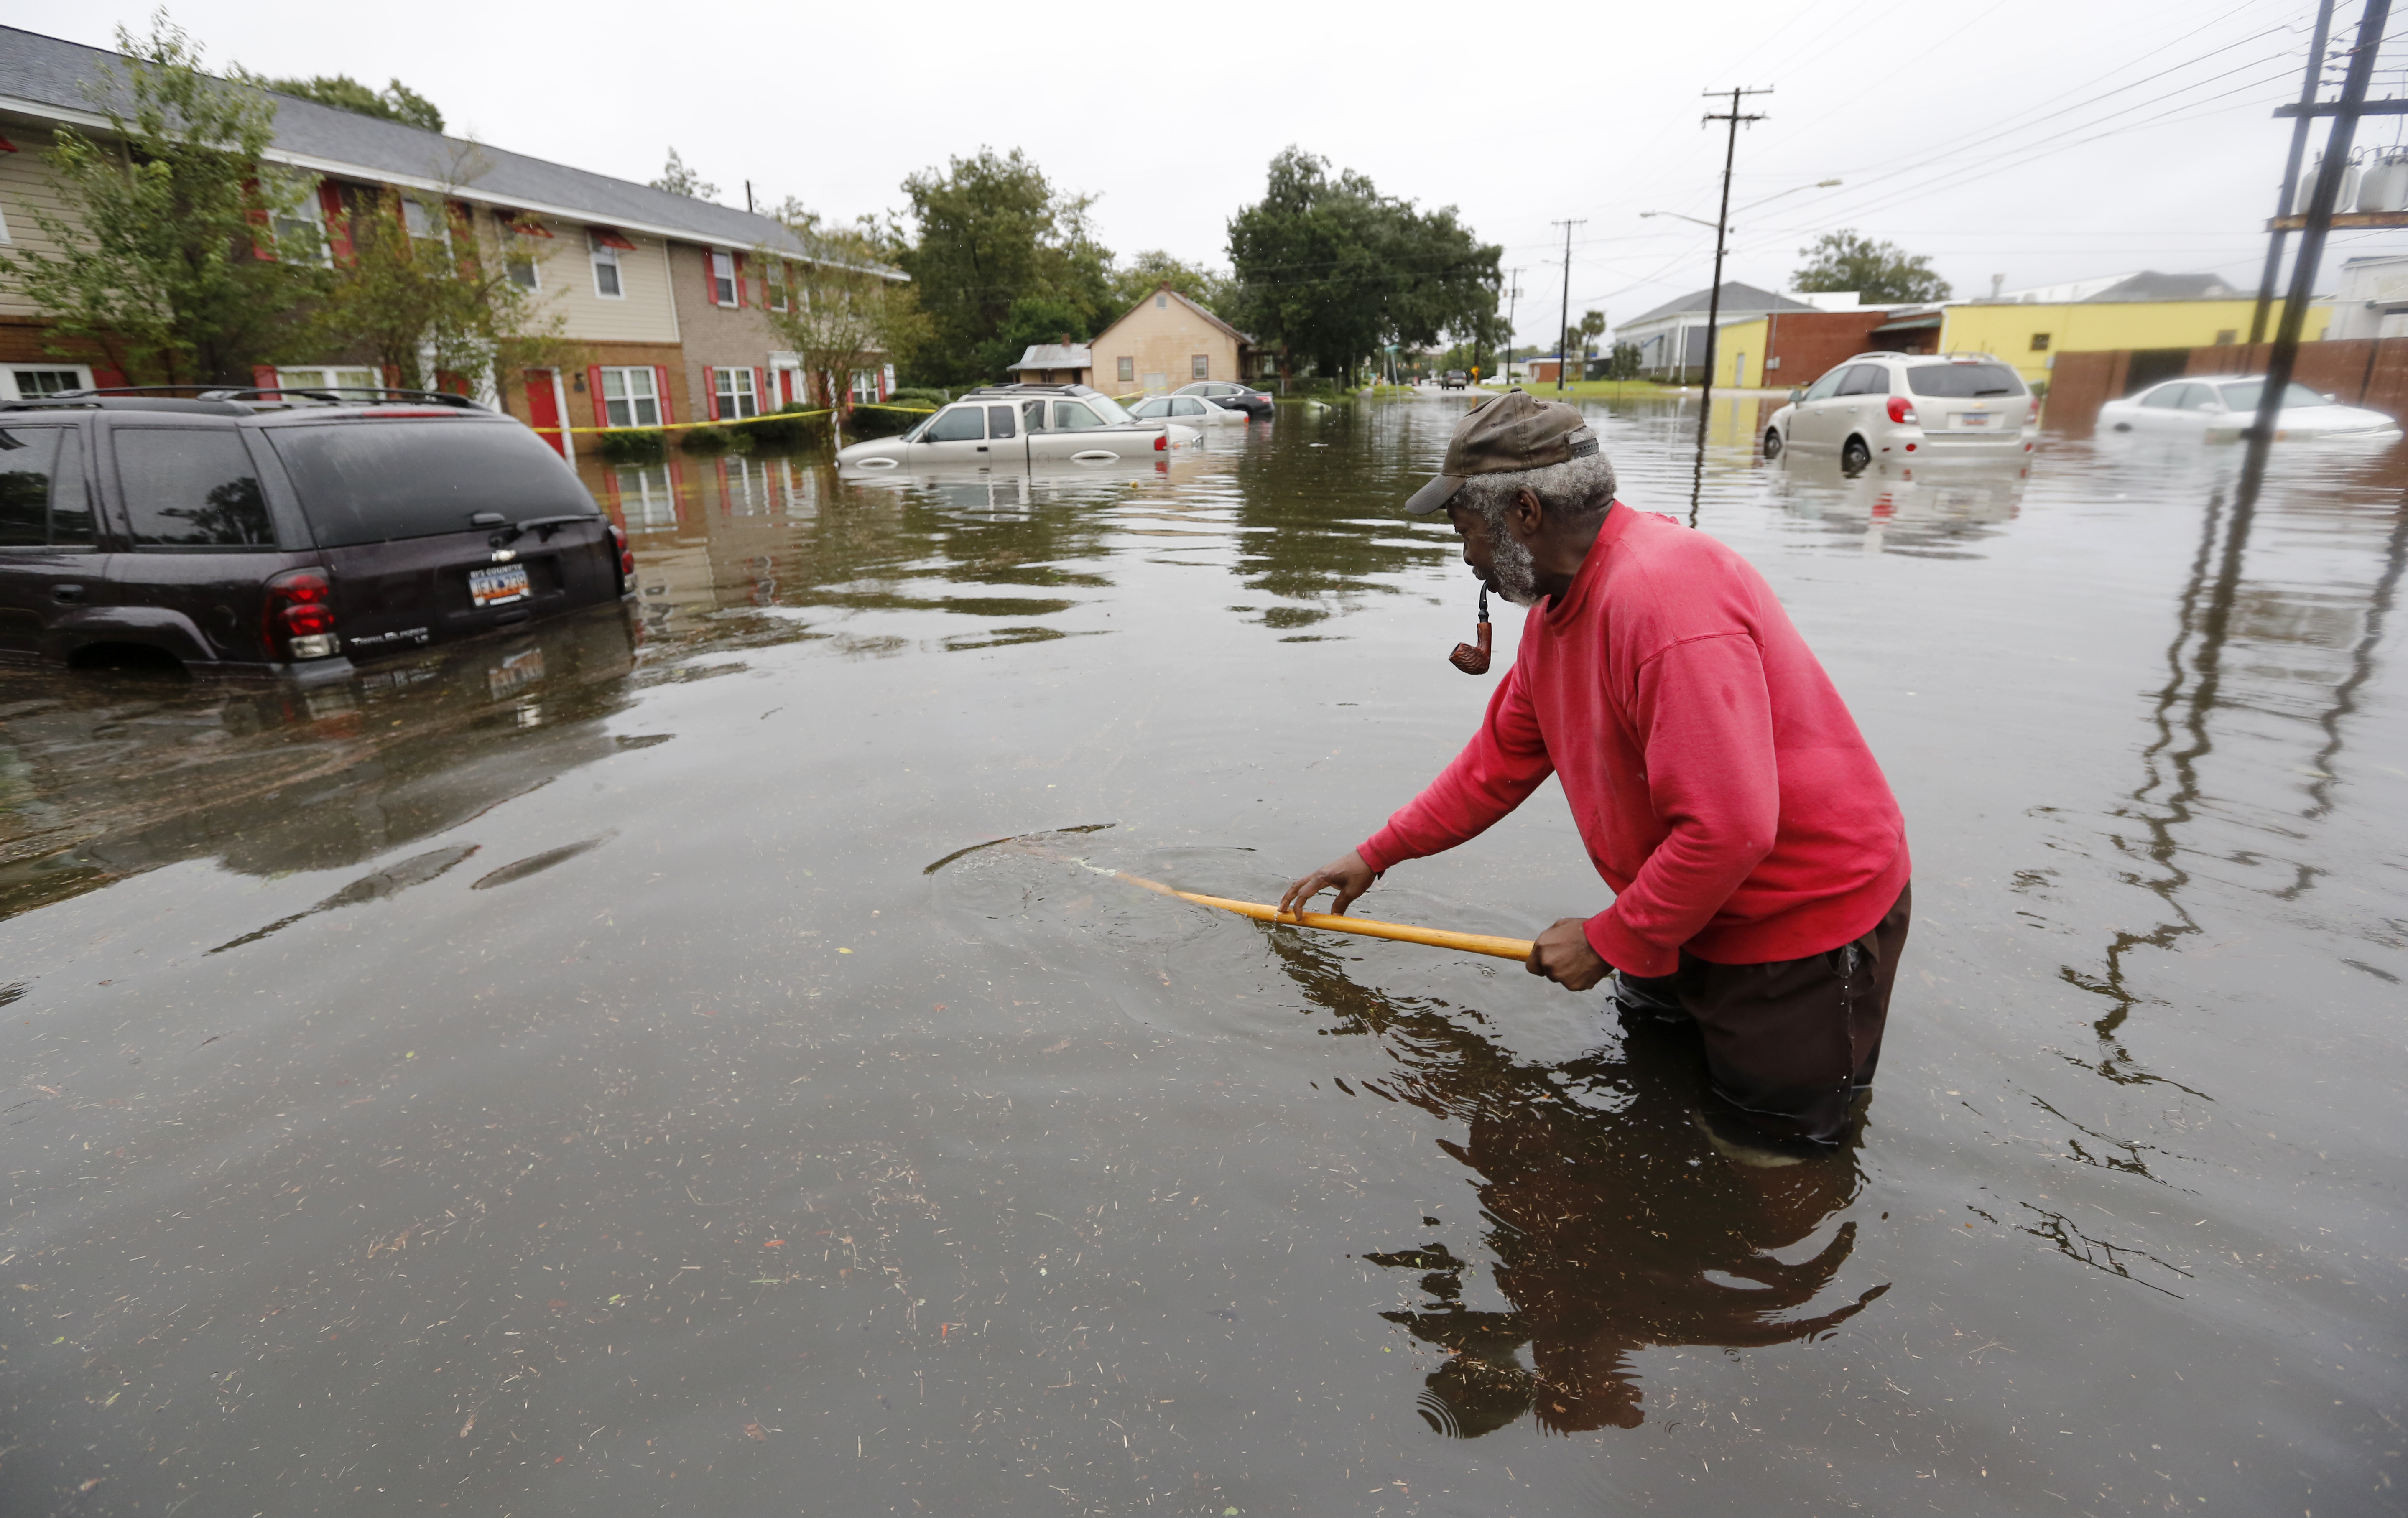 David Linnen takes a yard rake to clear drains in front of Winyah Apartments in Georgetown, S.C., Sunday, Oct. 4, 2015.